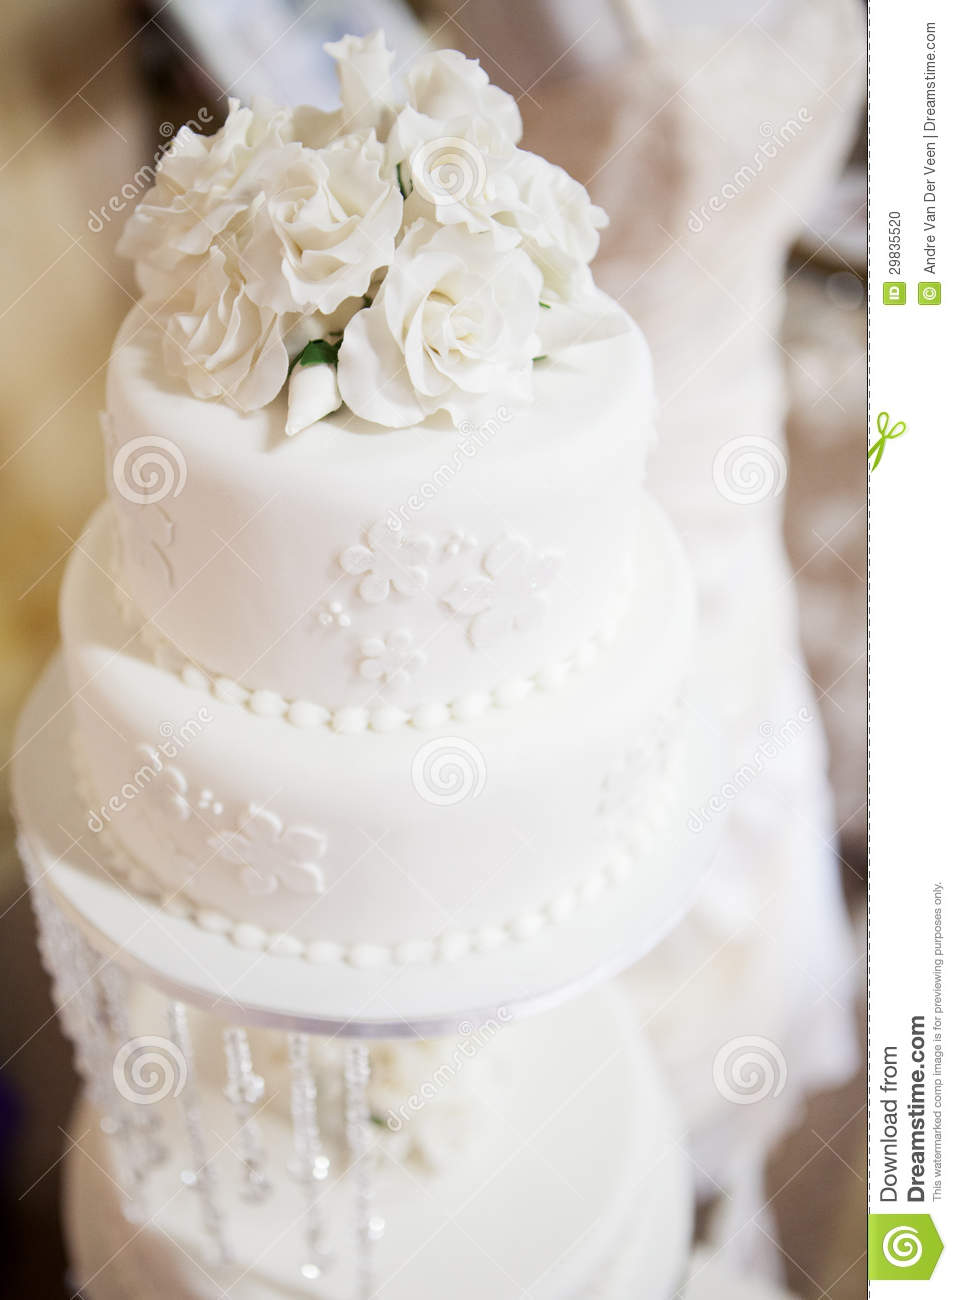 White Layered Wedding Cake With Roses On Top Stock Photo